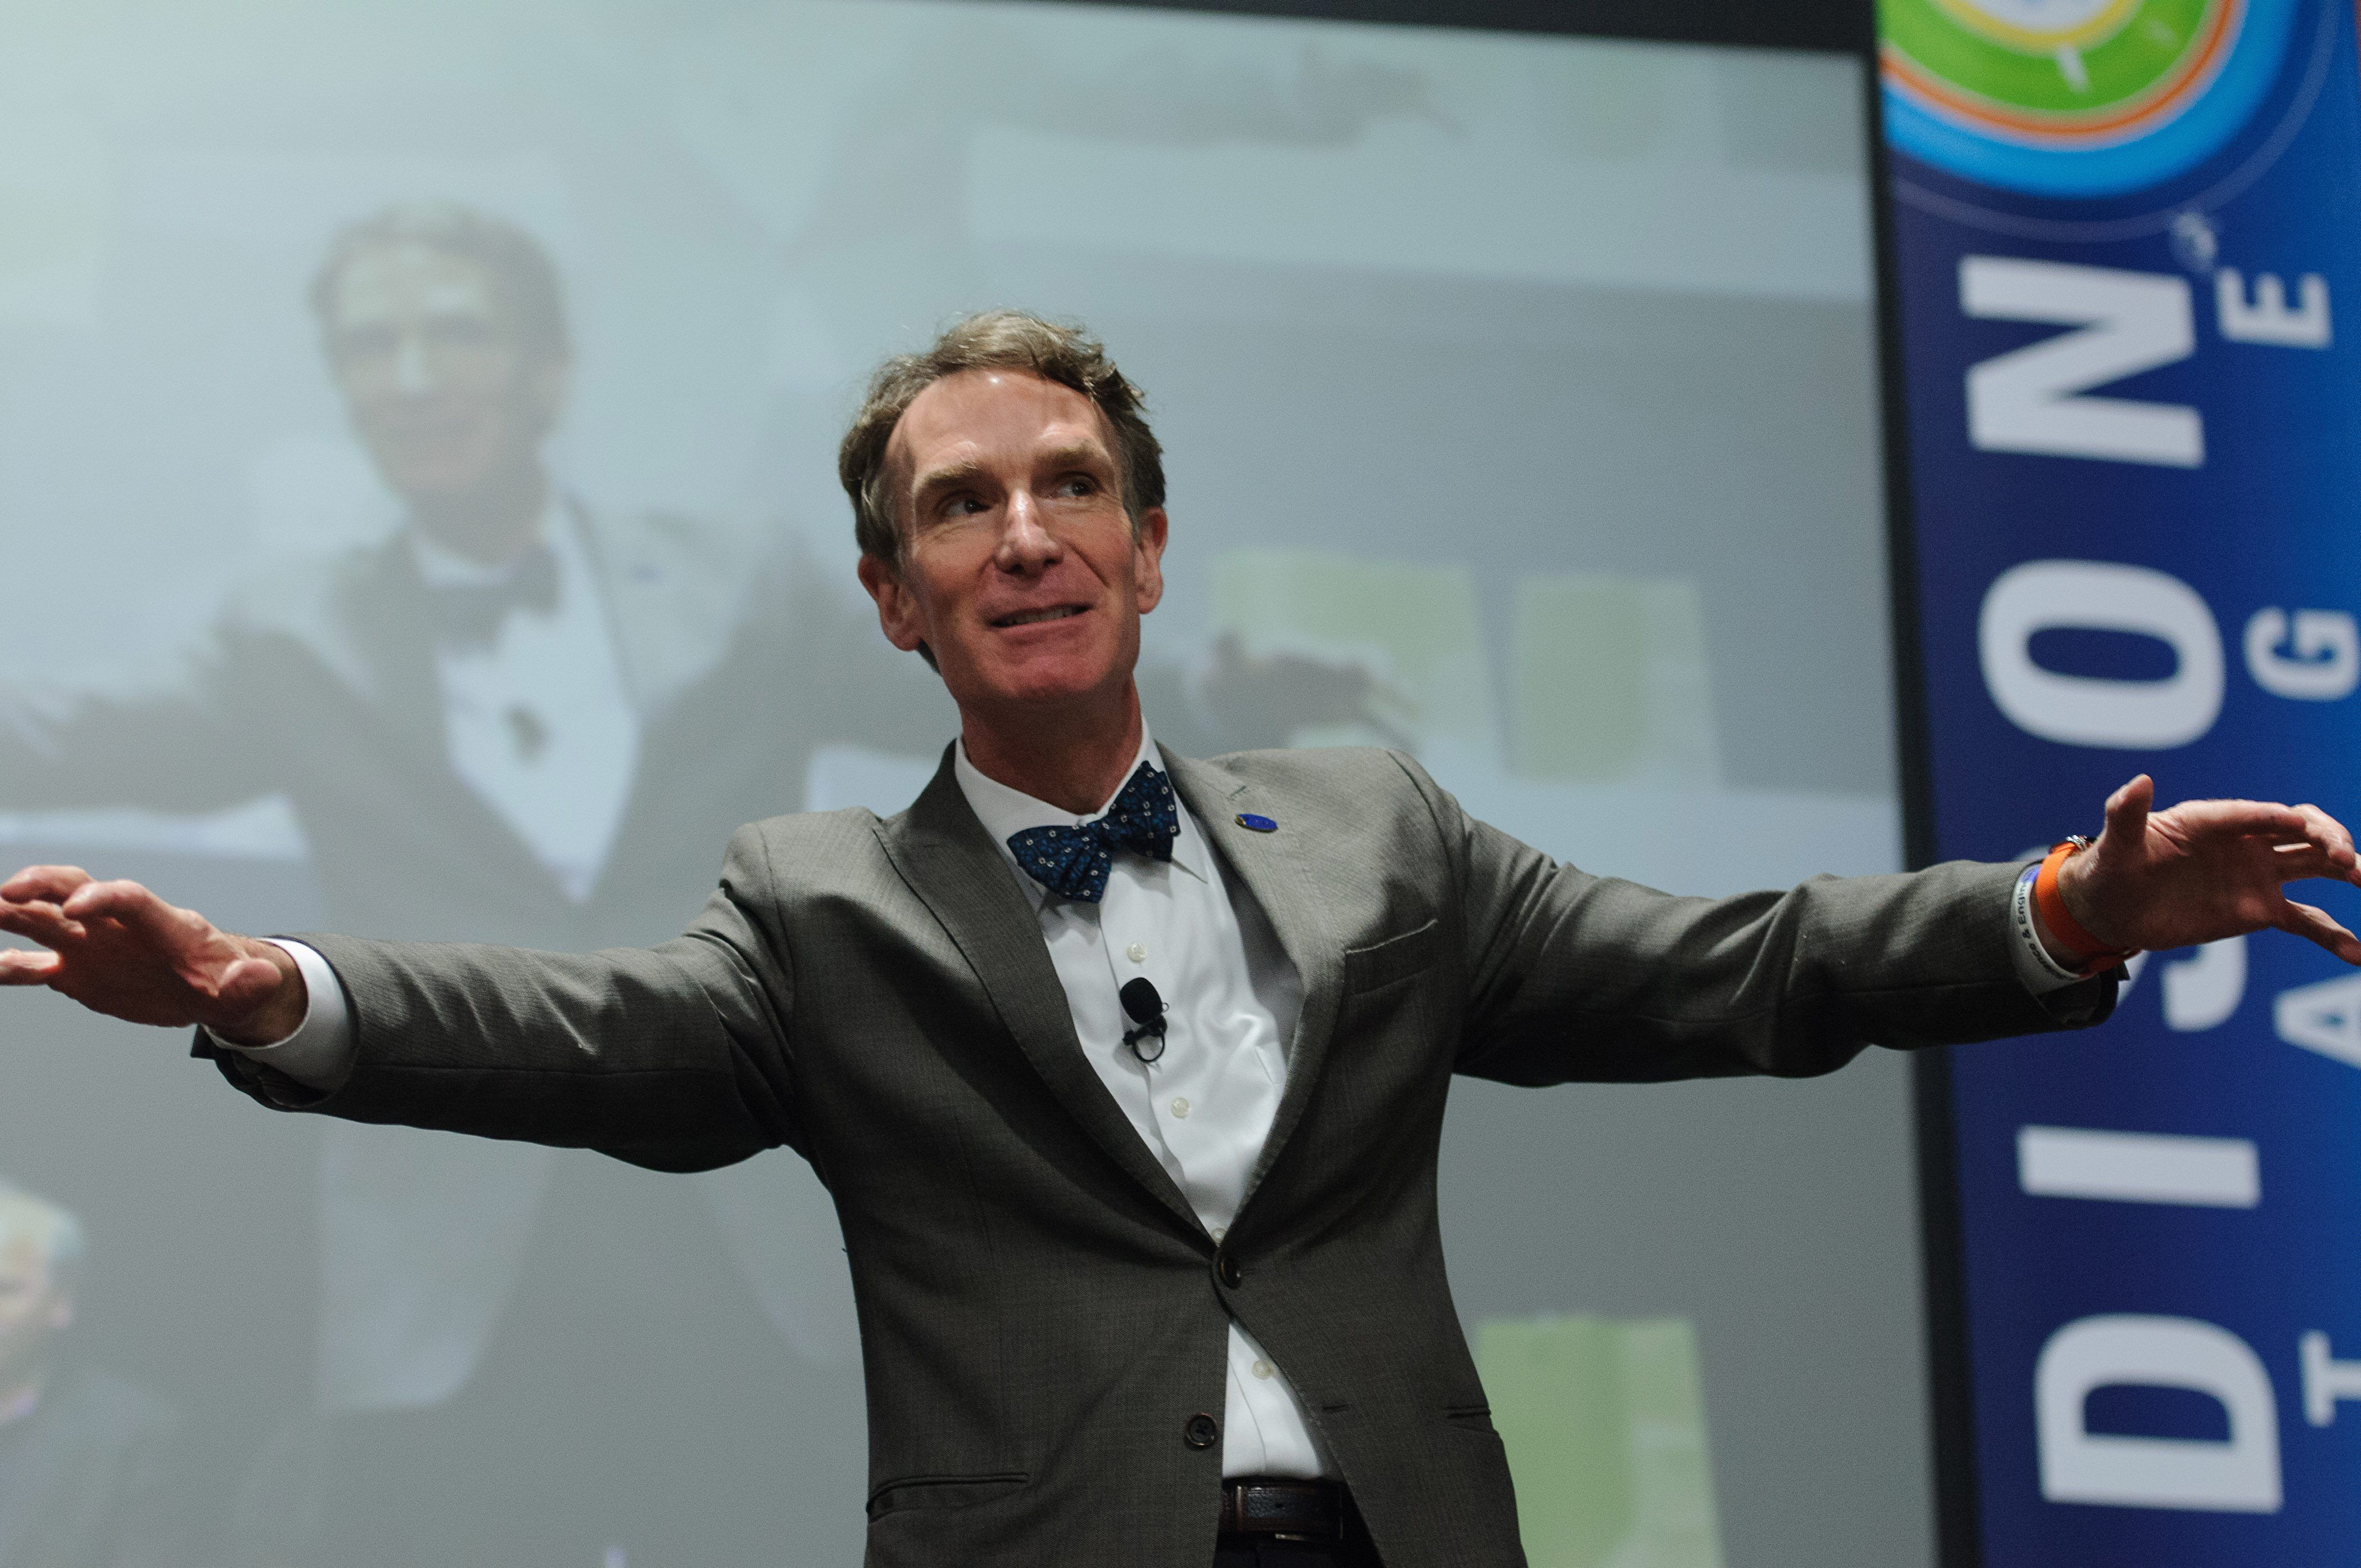 Bill Nye The Science Guy Is Open To Criminal Charges And